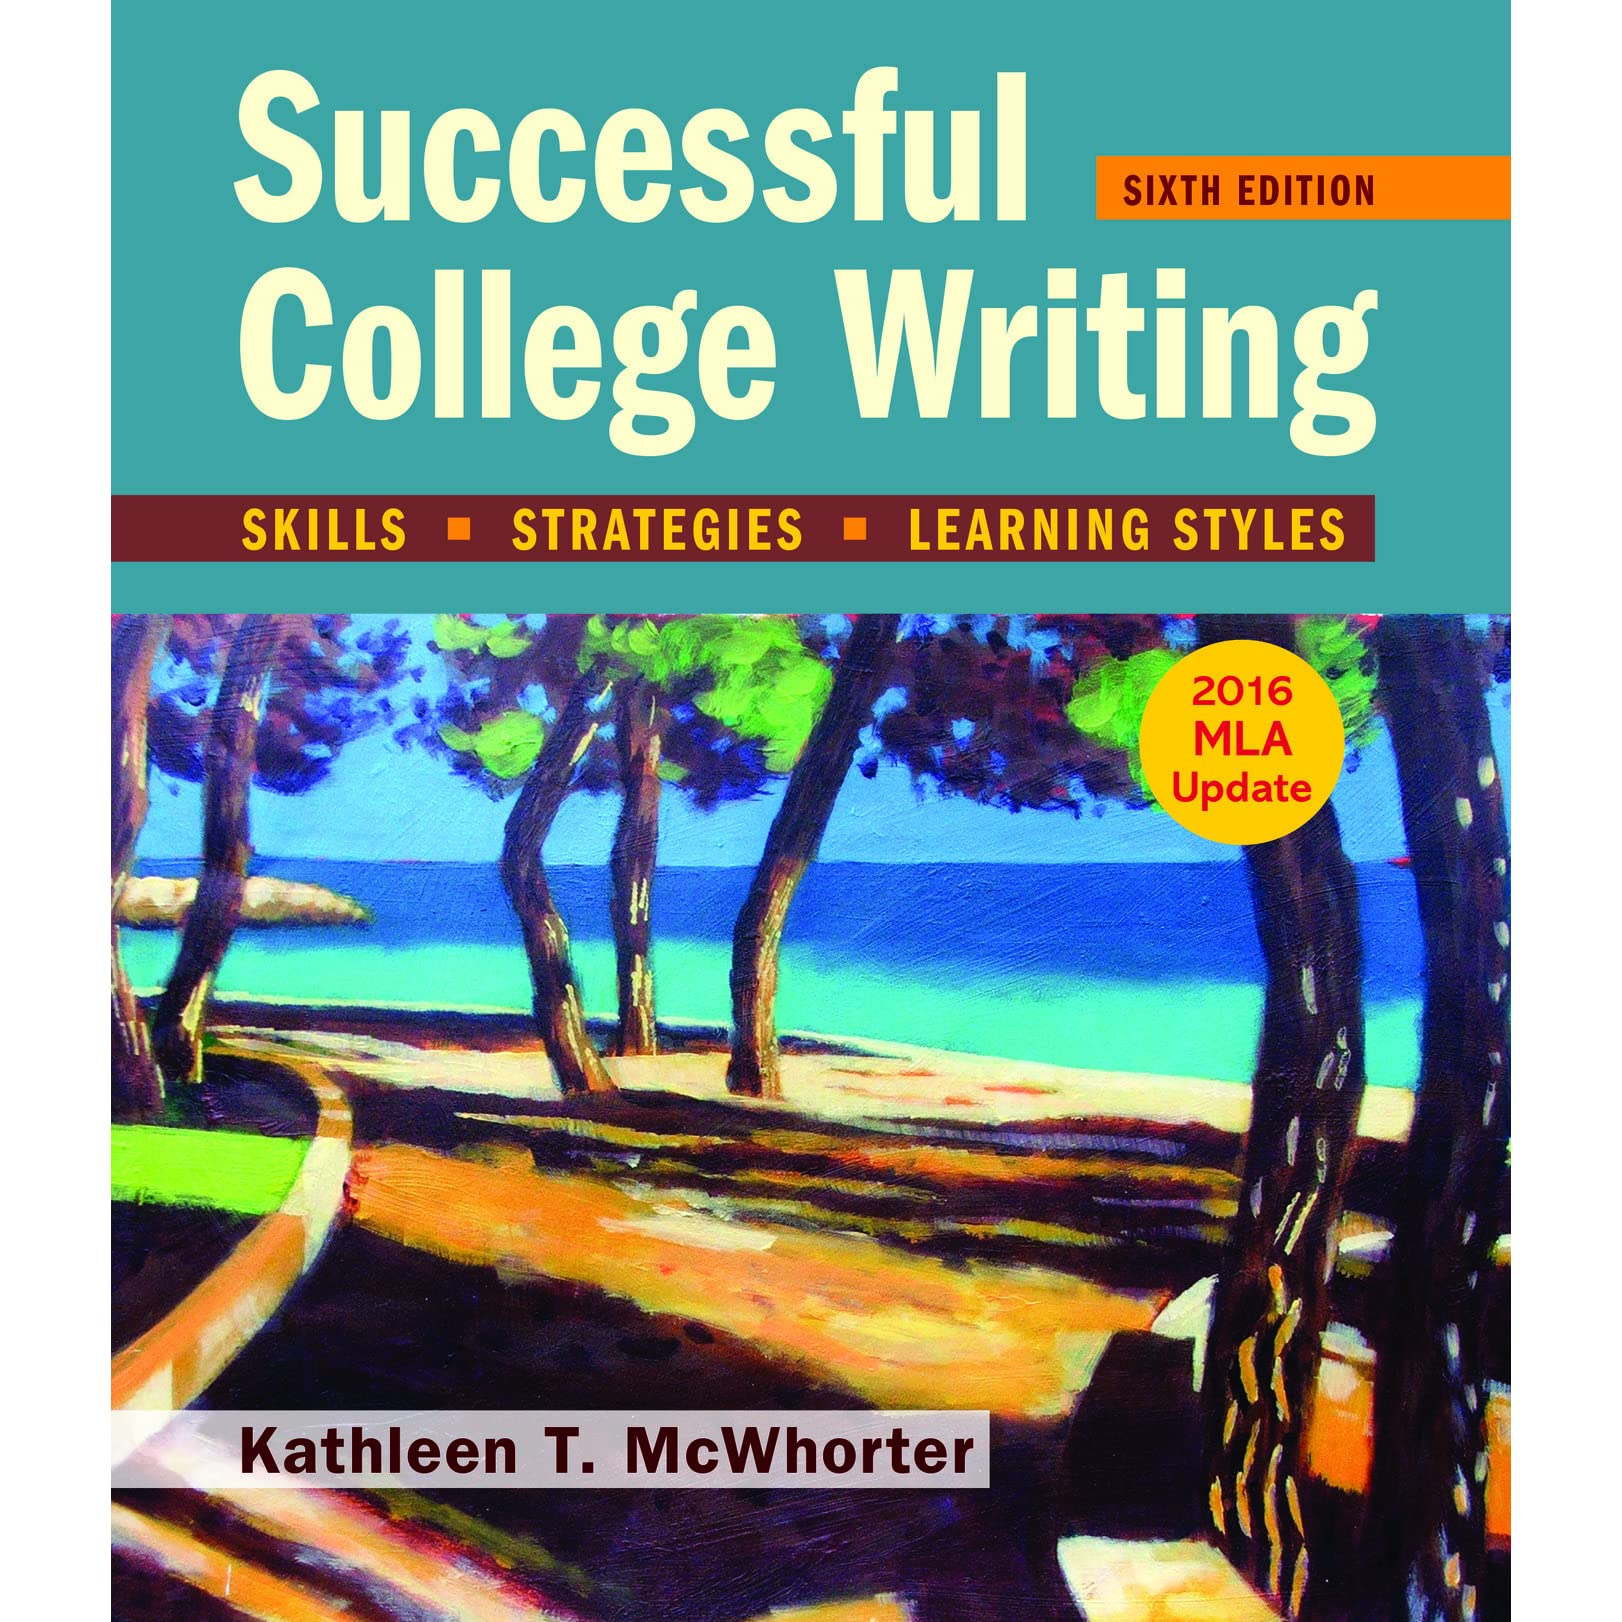 Successful College Writing 7th Edition Pdf Download